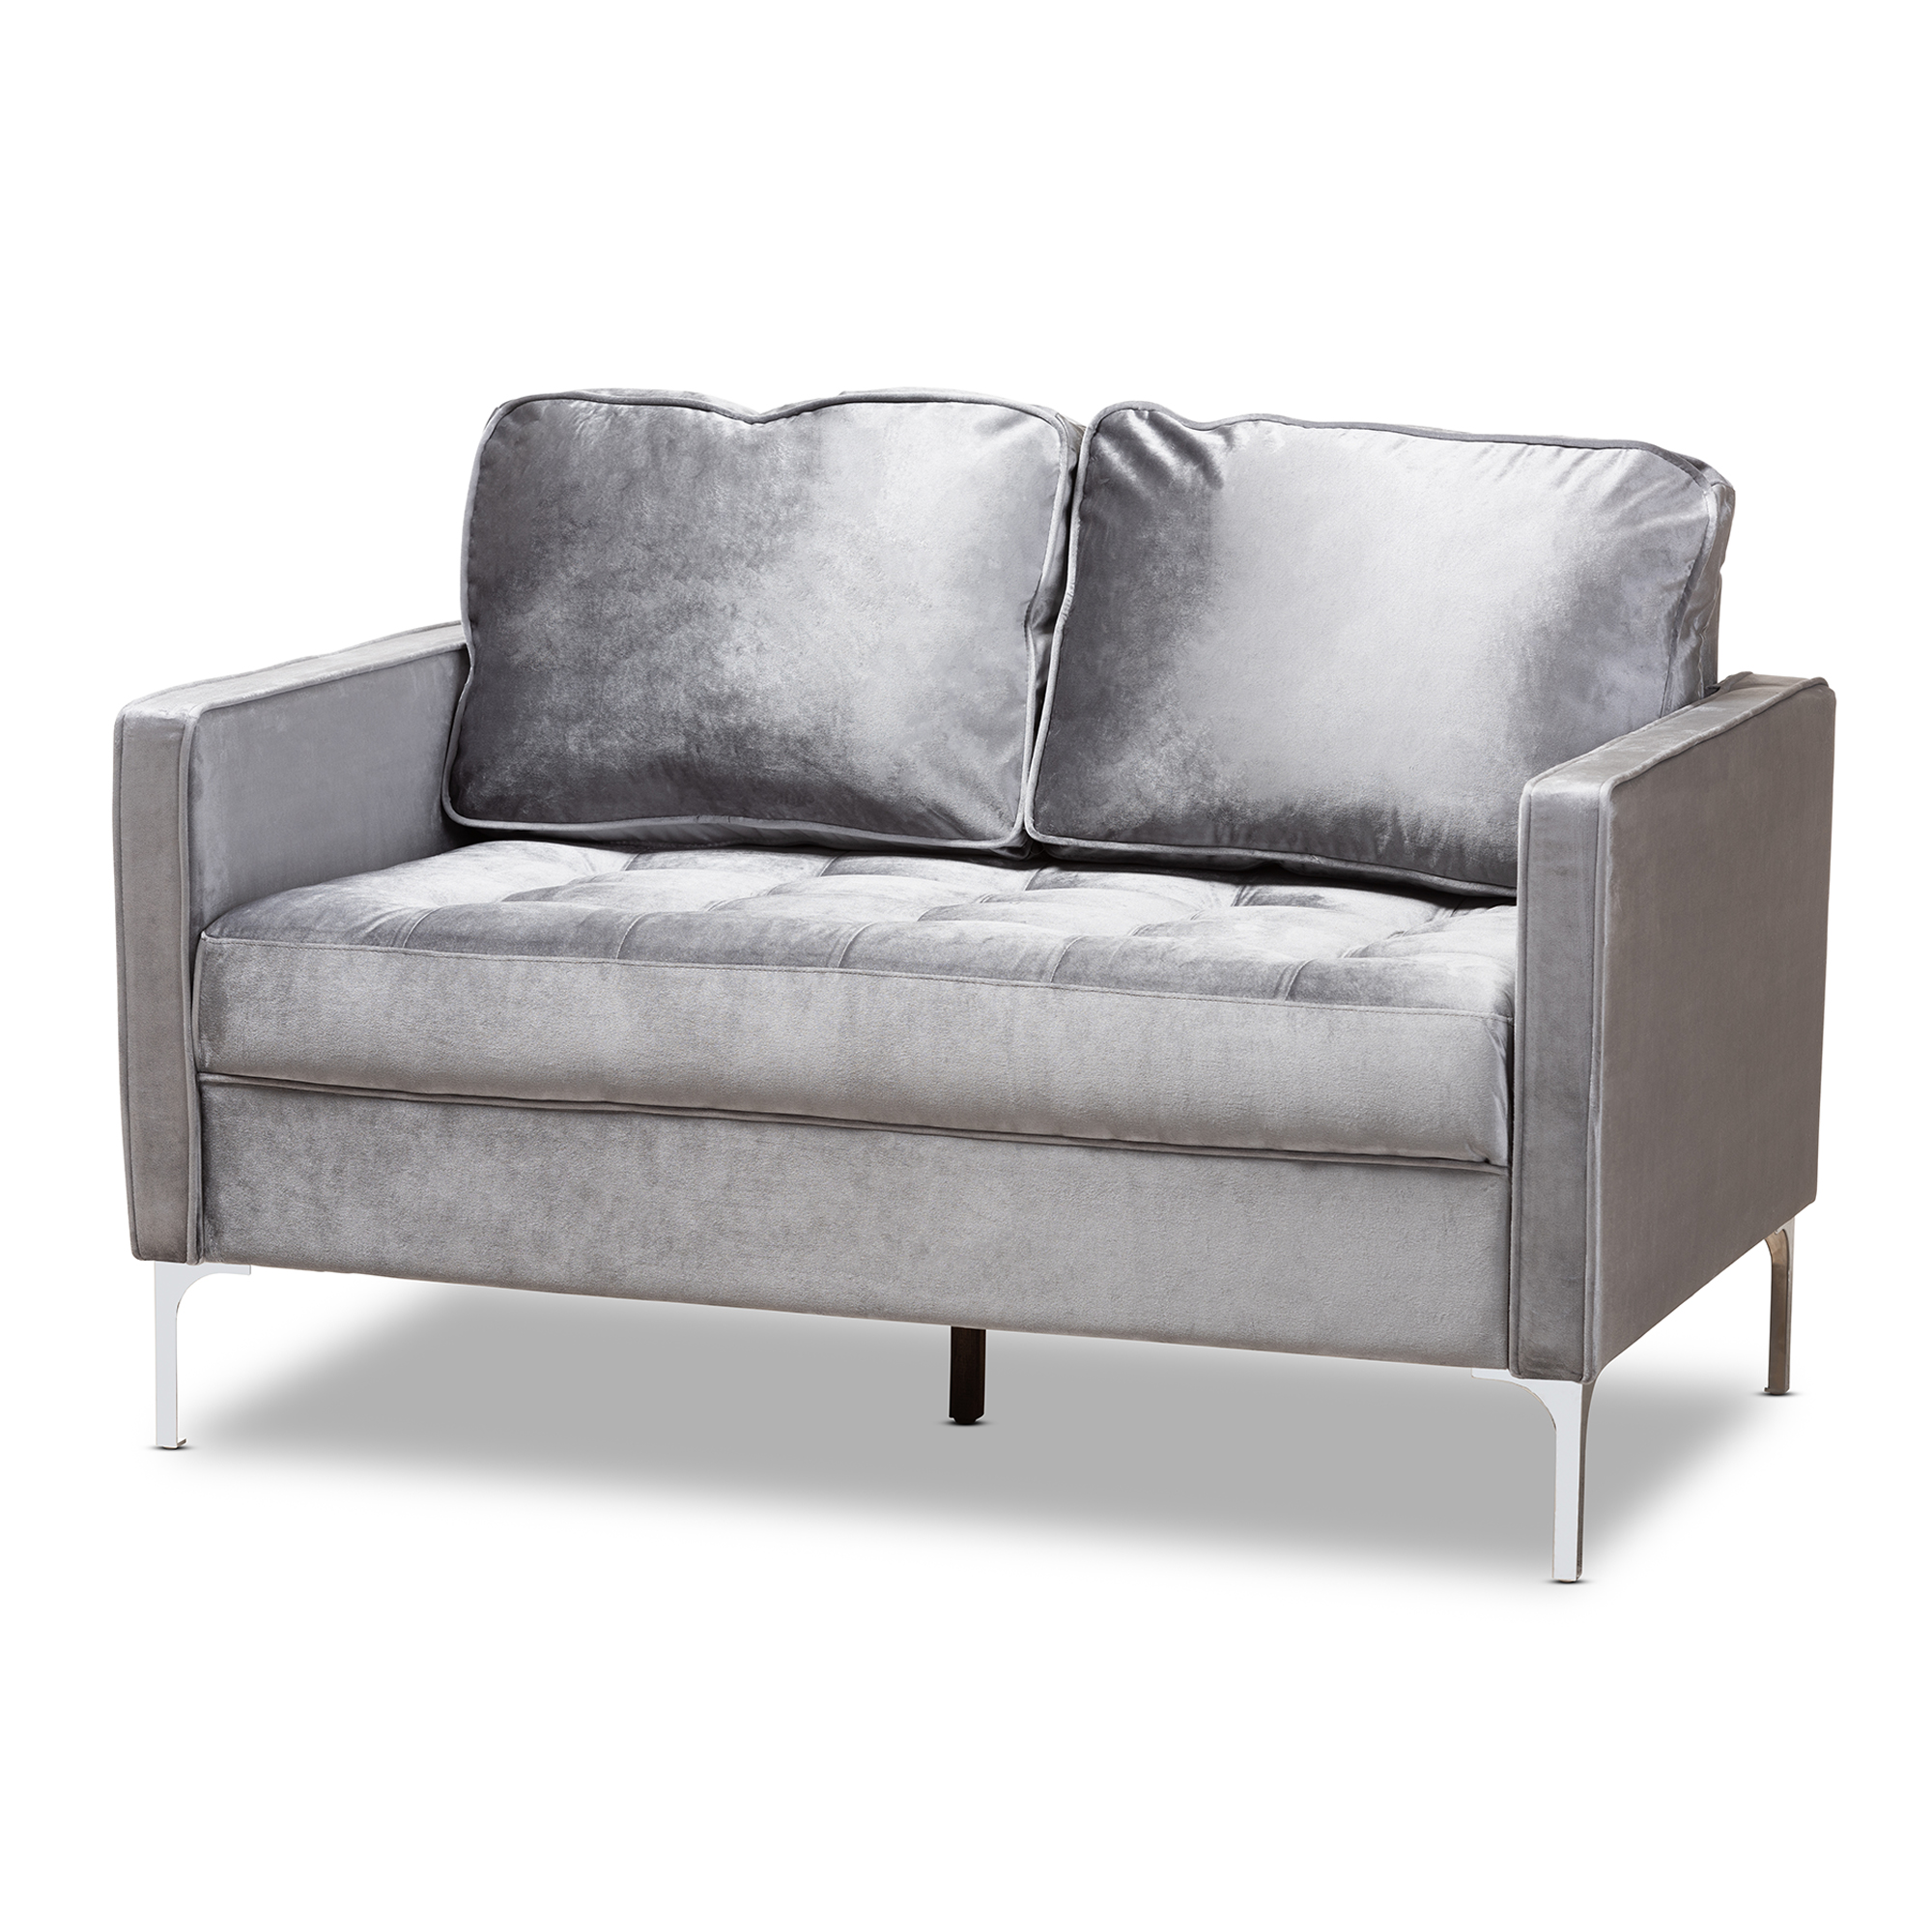 Charmant Baxton Studio Clara Modern And Contemporary Grey Velvet Fabric Upholstered  2 Seater Loveseat Affordable Modern